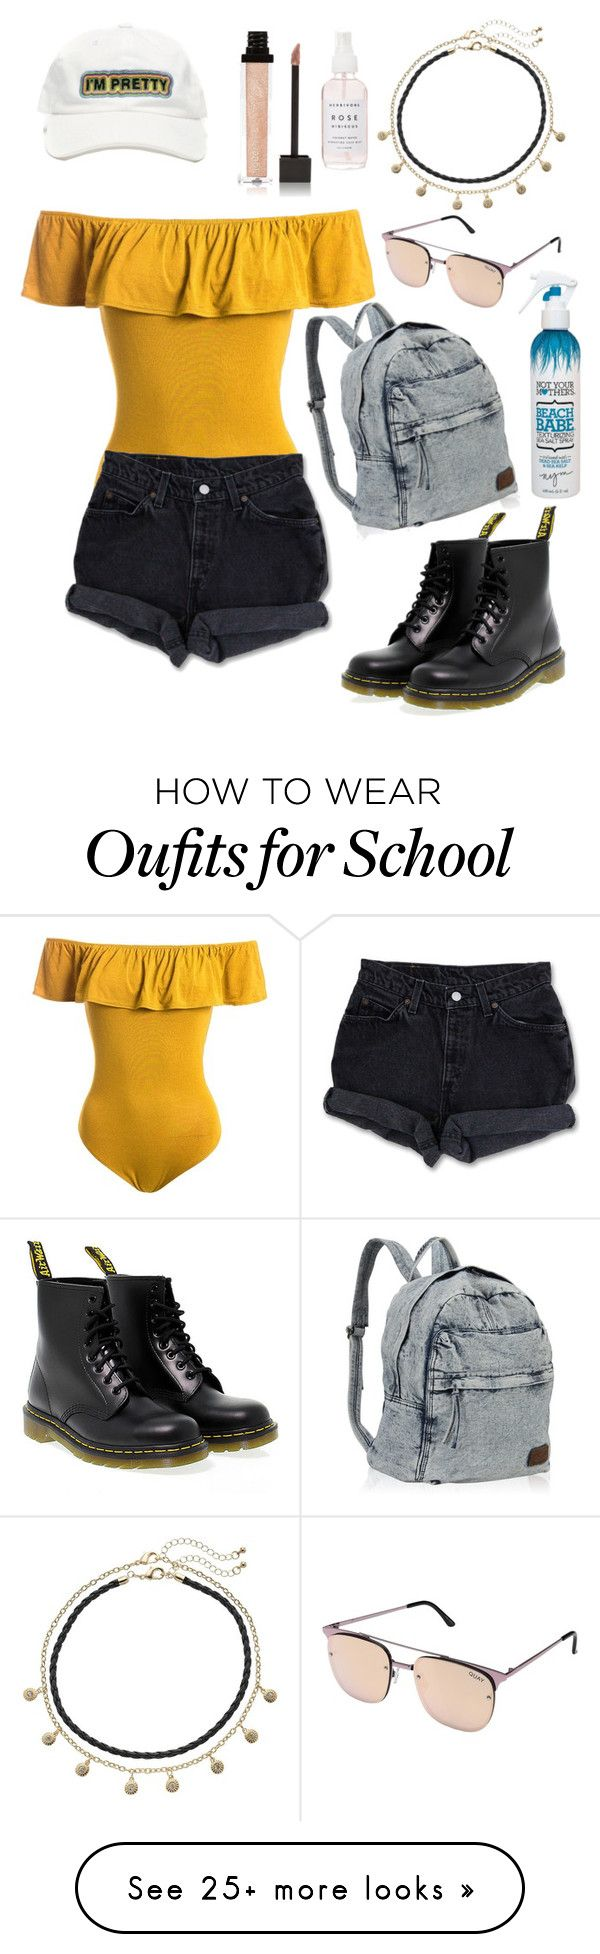 """""""Let's Grab Lunch"""" by bellalaney on Polyvore featuring Sans Souci, Levi's, Apt. 9, Dr. Martens, Jouer, Holly's House, Not Your Mother's and Quay"""